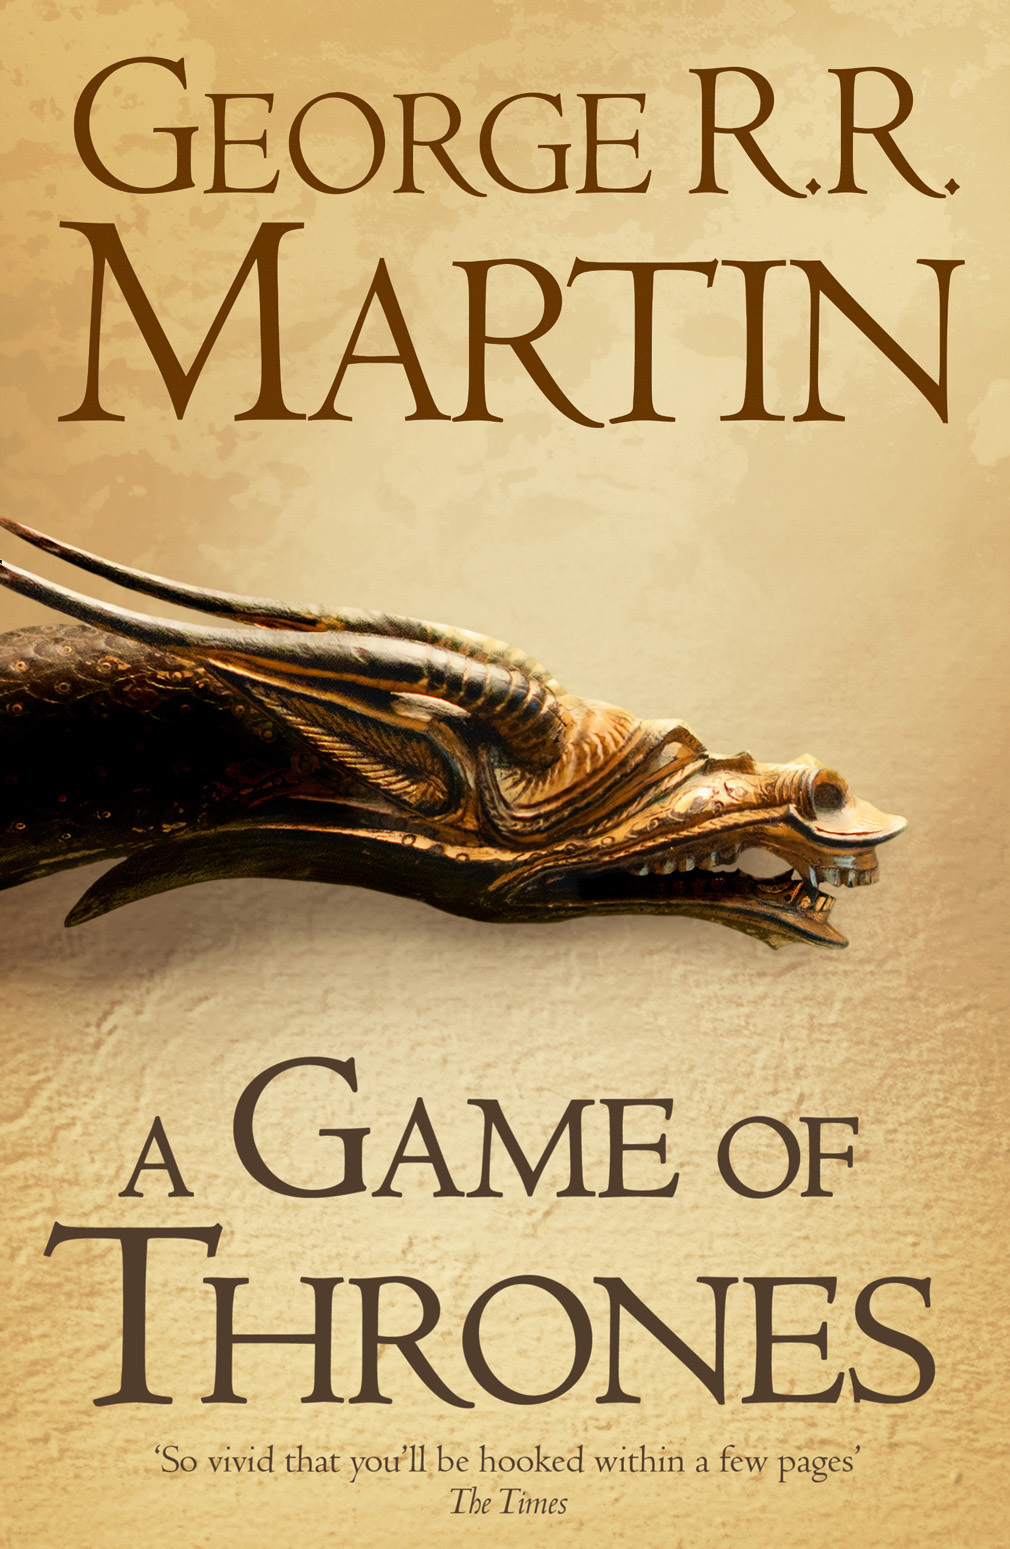 A Game of Thrones (Song of Ice and Fire #1) (UK Ed.) by George R.R. Martin image